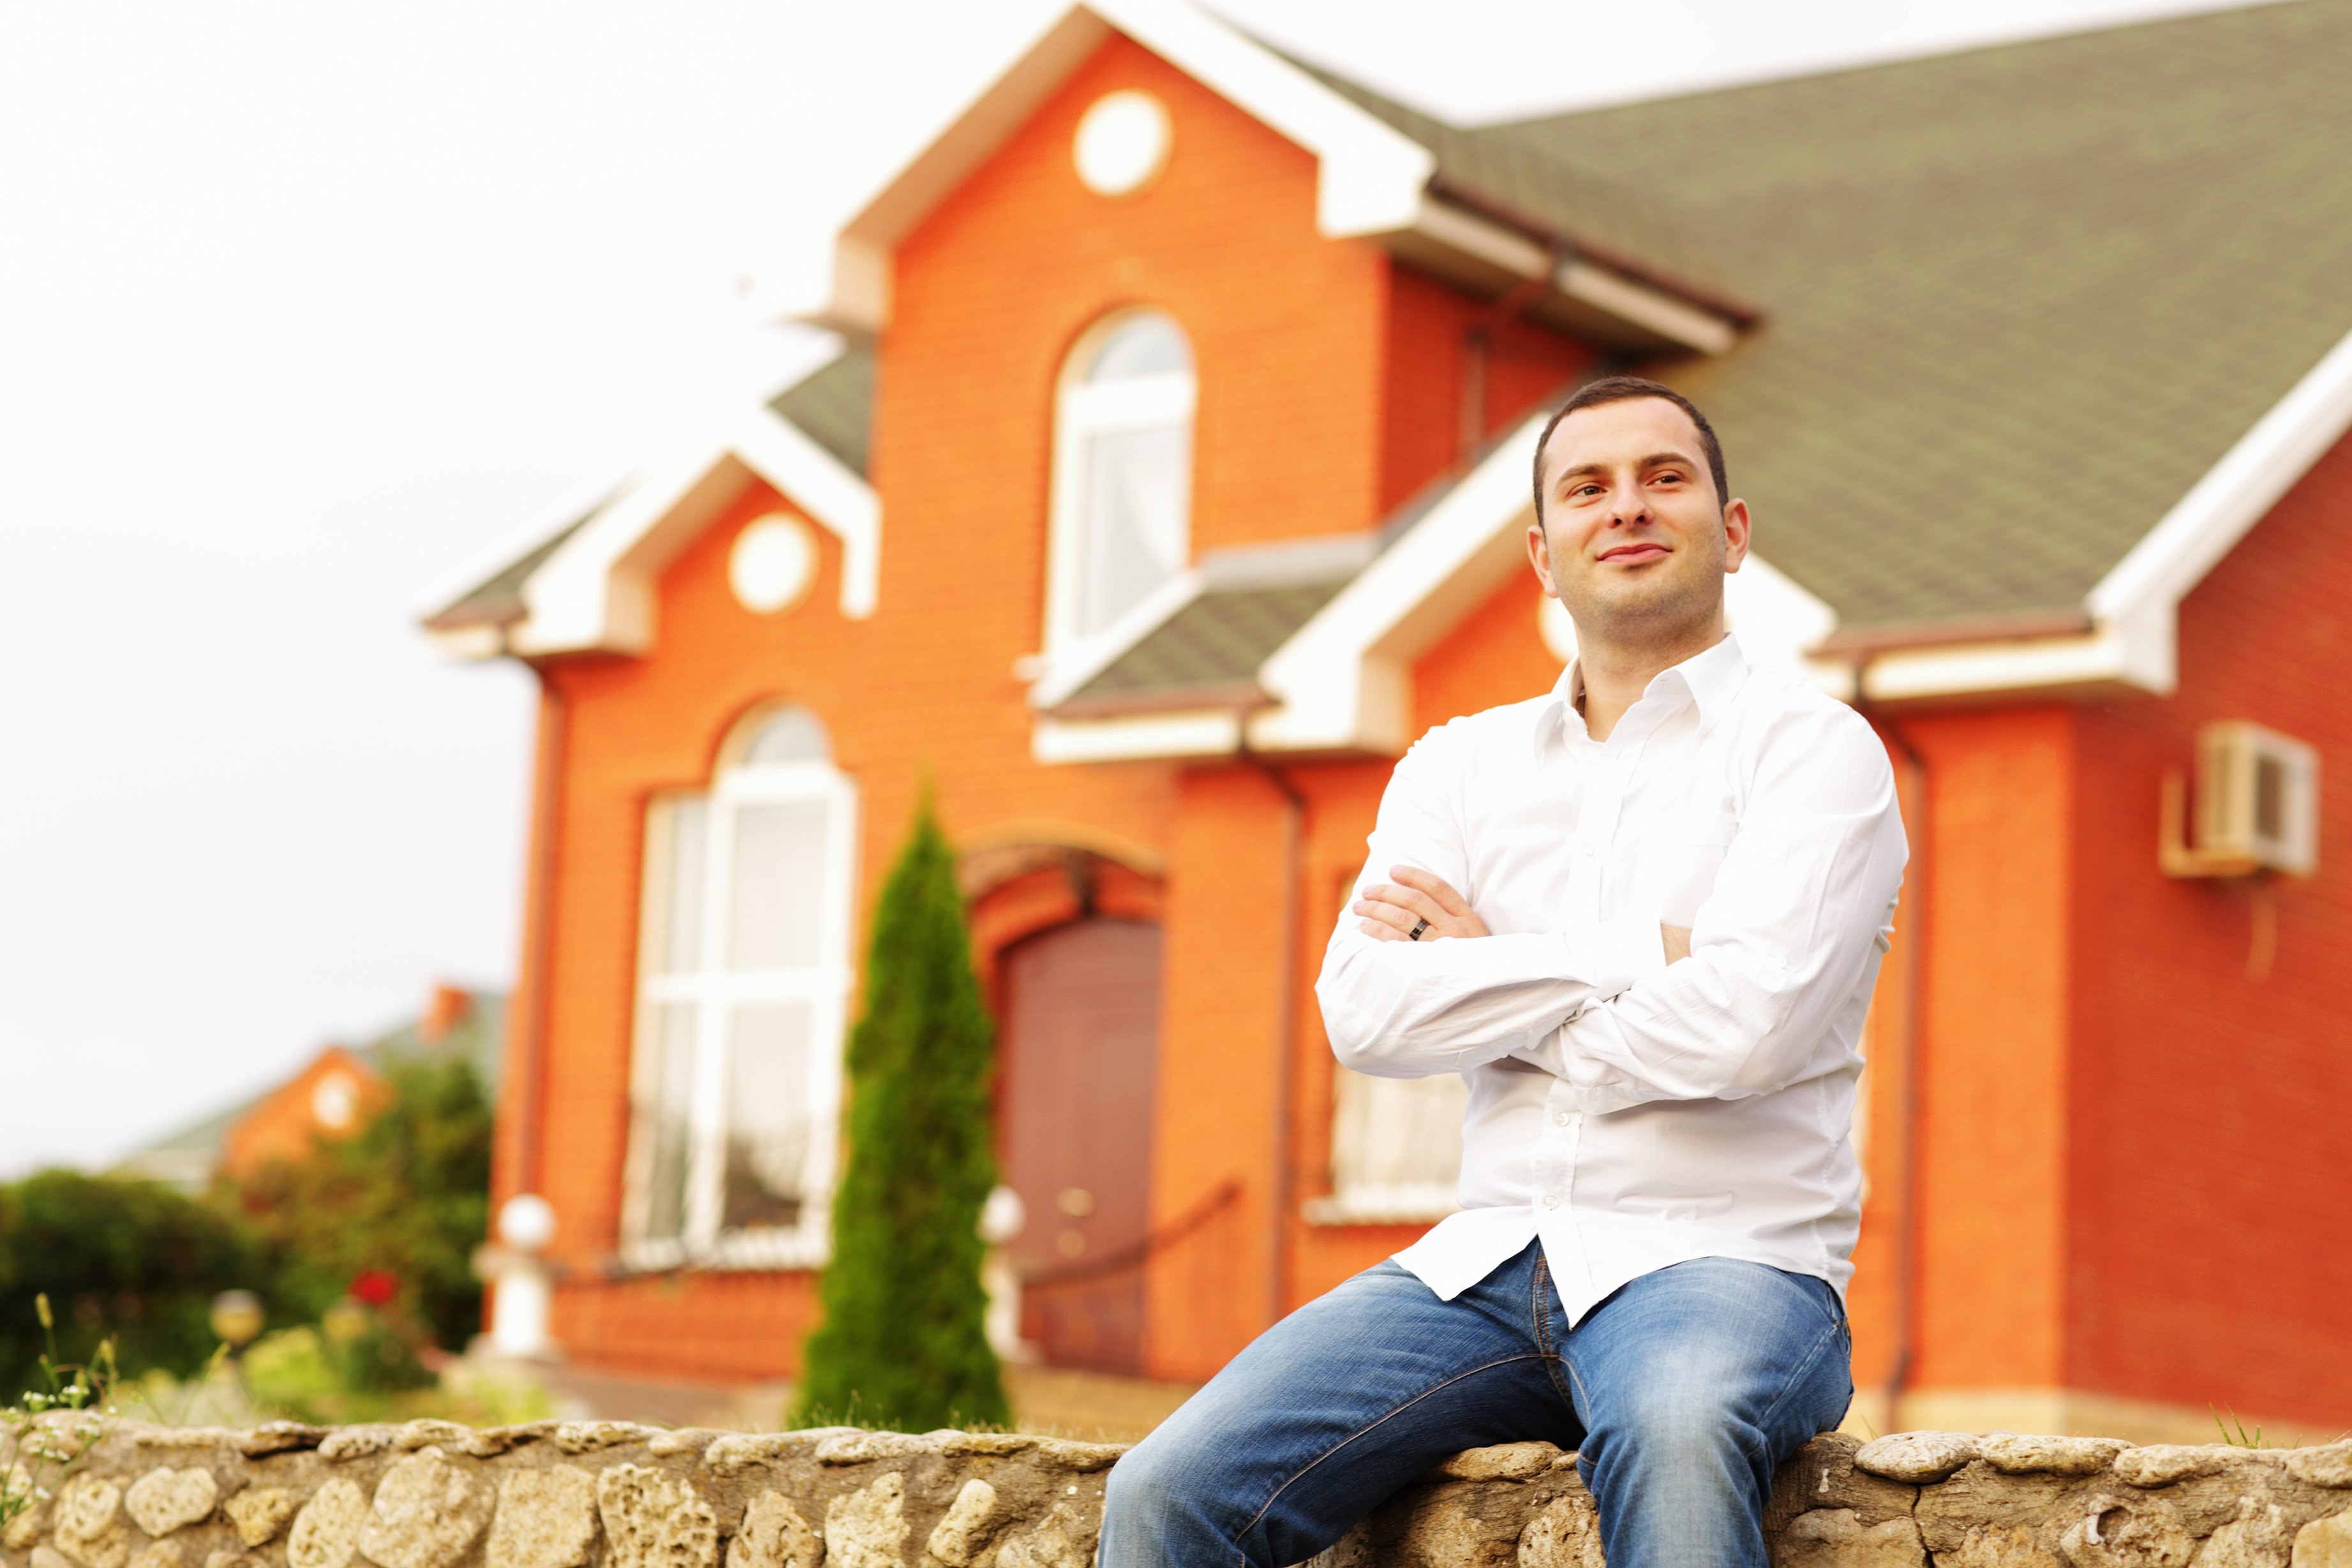 Happy man sitting in front of an orange-bricked house | Photo: Shutterstock